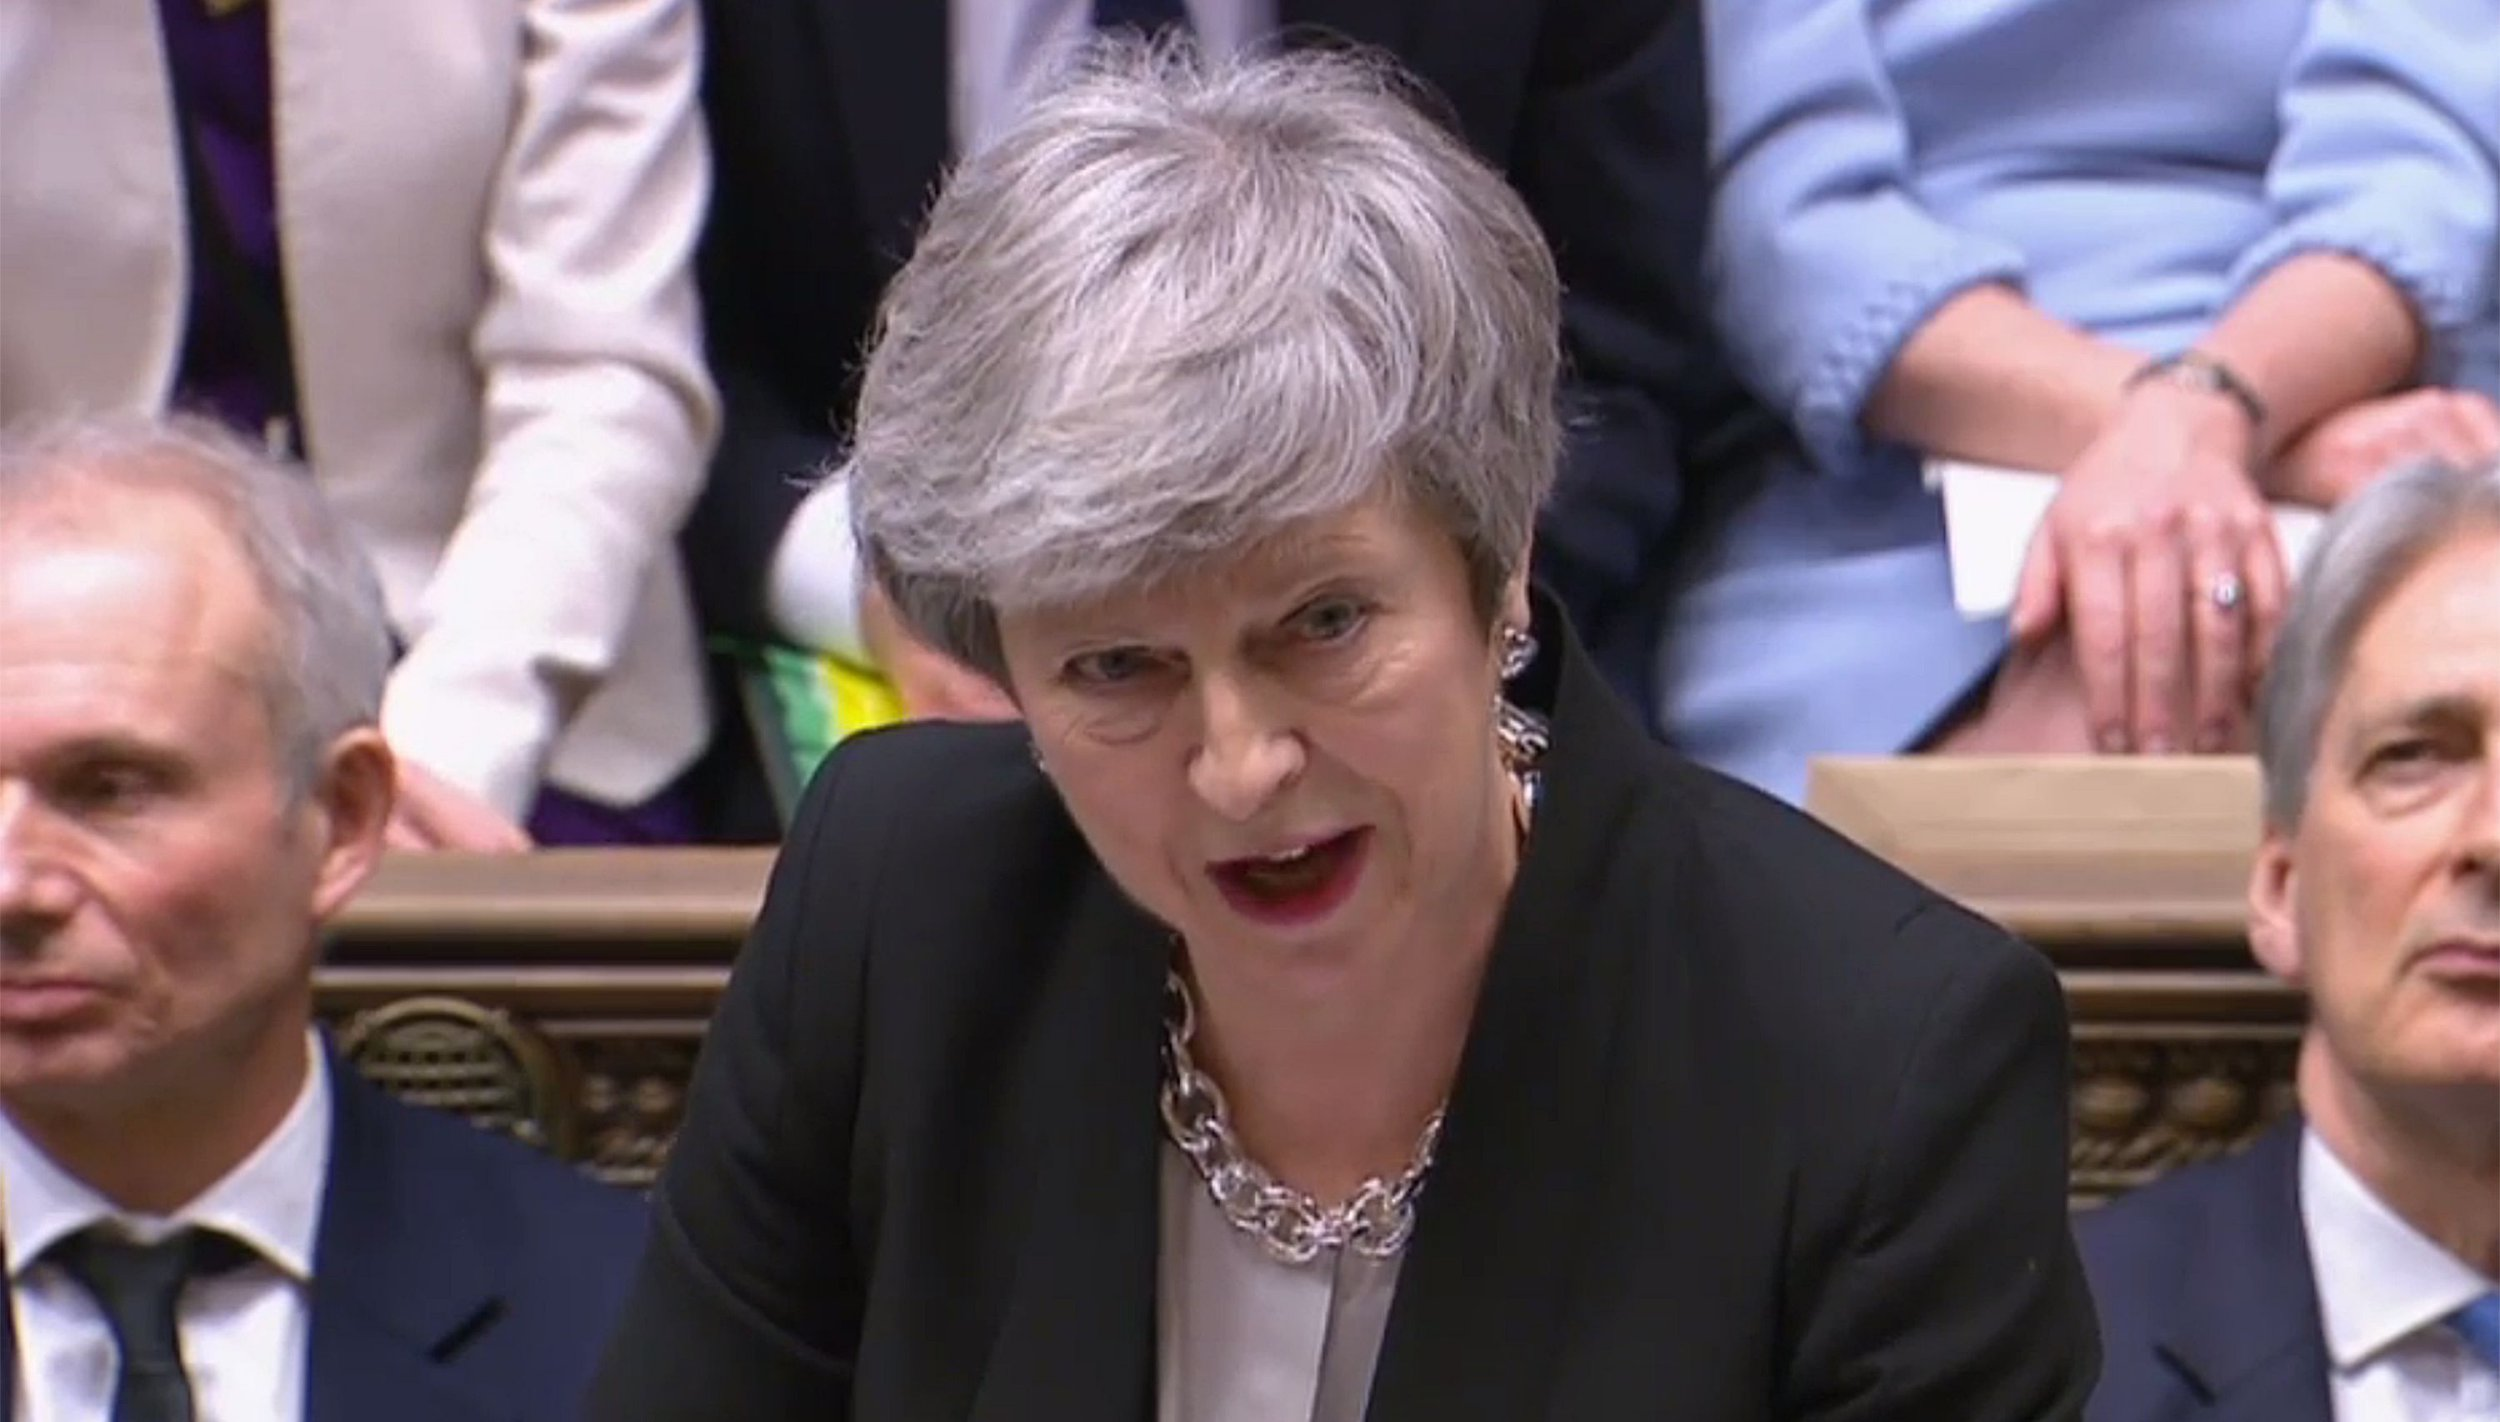 "A video grab from footage broadcast by the UK Parliament's Parliamentary Recording Unit (PRU) shows Britain's Prime Minister Theresa May as she speaks during the weekly Prime Minister's Questions (PMQs) in the House of Commons in London on February 13, 2019. - The British government denied Wednesday it was secretly plotting to bounce MPs into a last-minute choice just days before Brexit between a rejigged deal or a lengthy delay. ITV television reported that it had overheard Prime Minister Theresa May's chief Brexit negotiator Olly Robbins in a Brussels bar saying the European Union would probably let Britain extend its March 29 departure date. (Photo by - / PRU / AFP) / RESTRICTED TO EDITORIAL USE - MANDATORY CREDIT "" AFP PHOTO / PRU "" - NO USE FOR ENTERTAINMENT, SATIRICAL, MARKETING OR ADVERTISING CAMPAIGNS-/AFP/Getty Images"